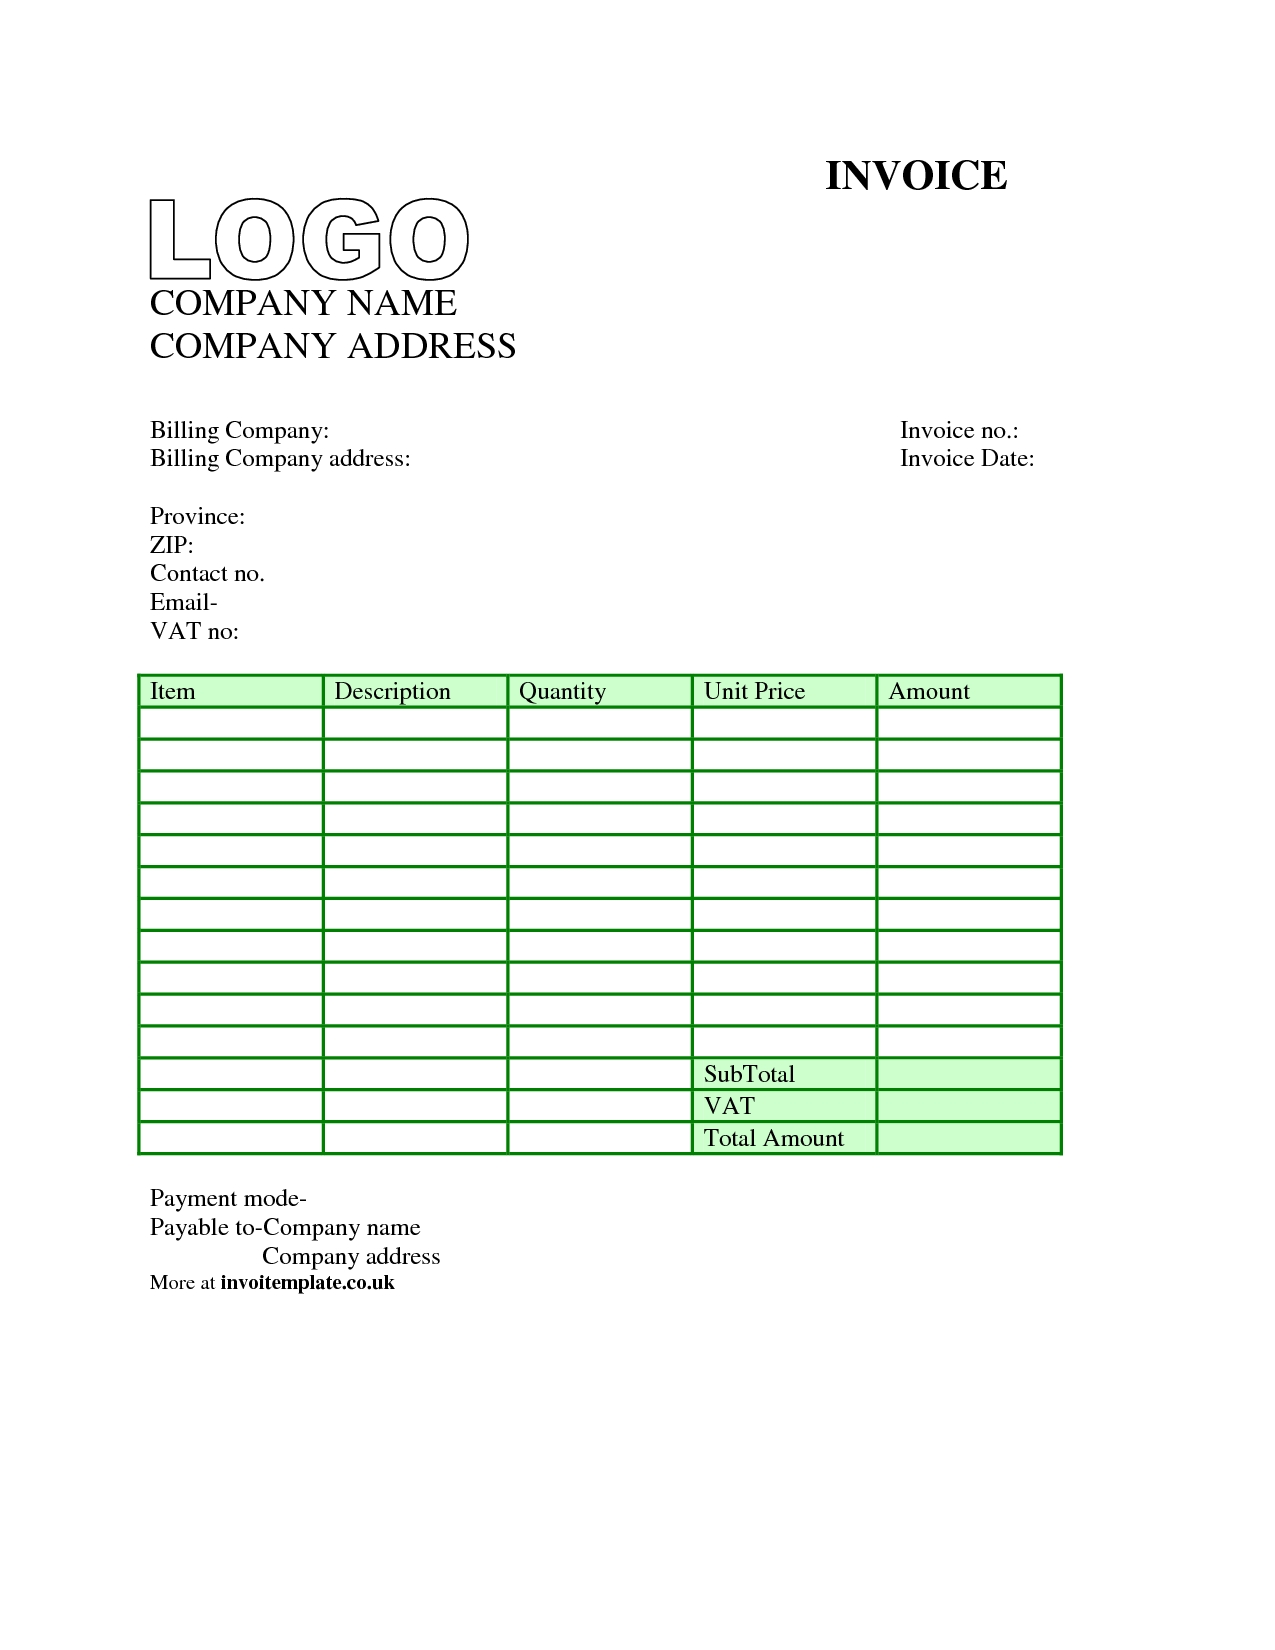 invoice format free download invoice in word microsoft word free downloadable invoice template word